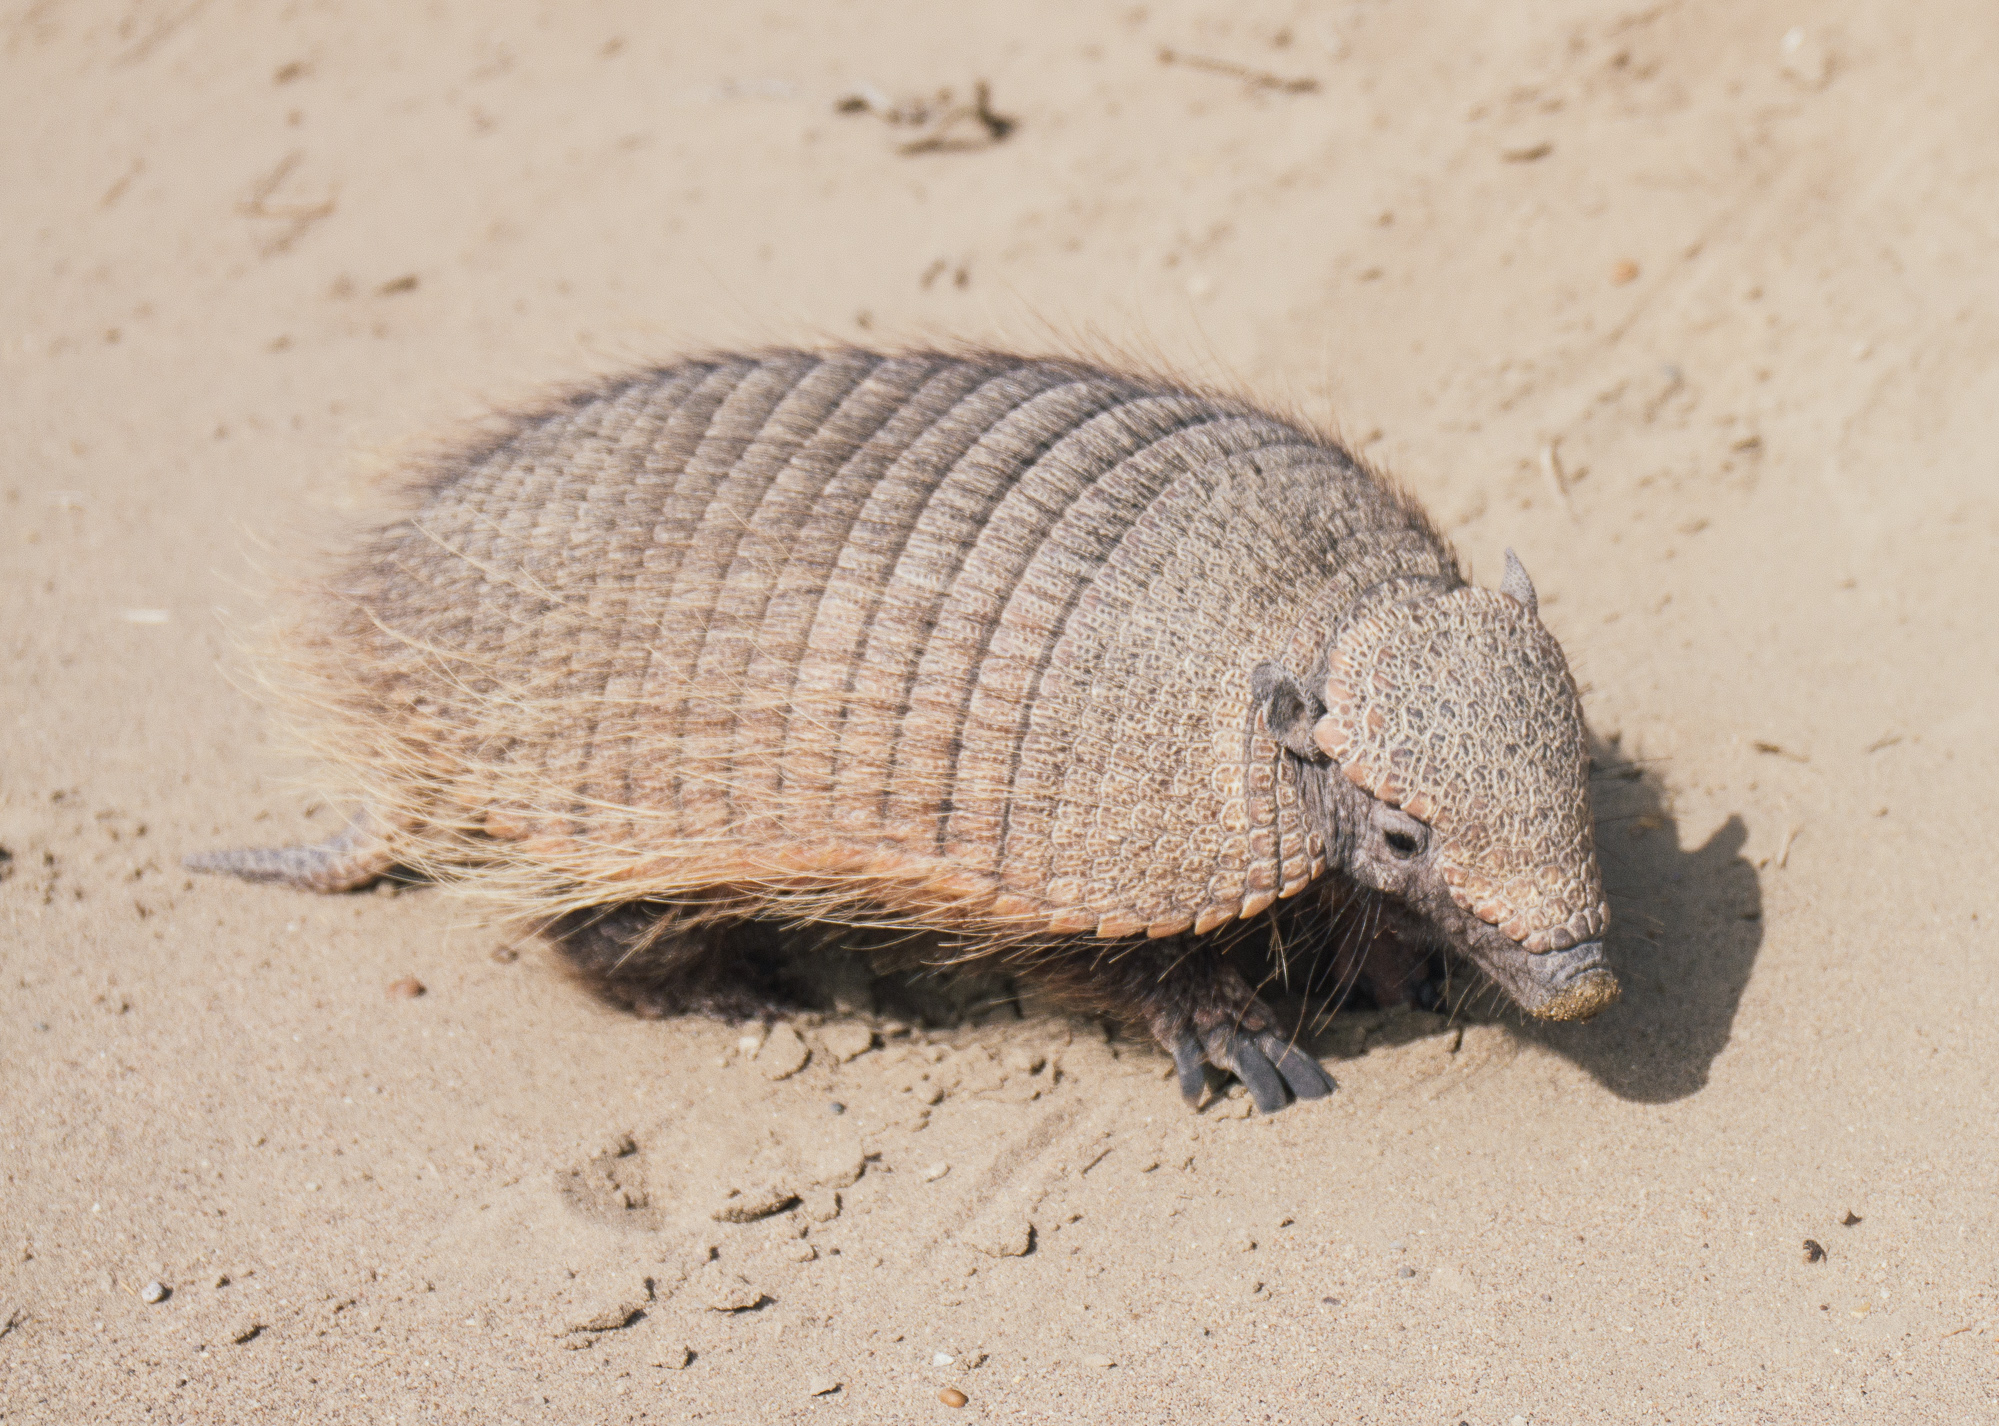 On the Armadillo  Armadillos are truly fascinating creatures and the Americas play host to all of the c. 20 species.  Carla was lucky enough to get these snaps of a hairy armadillo going for a wander, the larger of the two species found in the area.  We later came across a dead young whale on a beach.  Our guide, a local of thirty years who has taken kayak tours internationally, including through Antarctica, and who we trusted, later told us the most incredible tale, of which we still find hard to believe.  Apparently these armadillos are also scavengers.  During whale season a number of whales will die due to natural attrition and wash up on the beach.  Shortly thereafter numerous holes will appear in the dunes around the carcass - the armadillos come and build temporary nests from which they come out to consume the whale at night.  We couldn't find any evidence of it on the internet - definitely a tale which needs to be investigated!